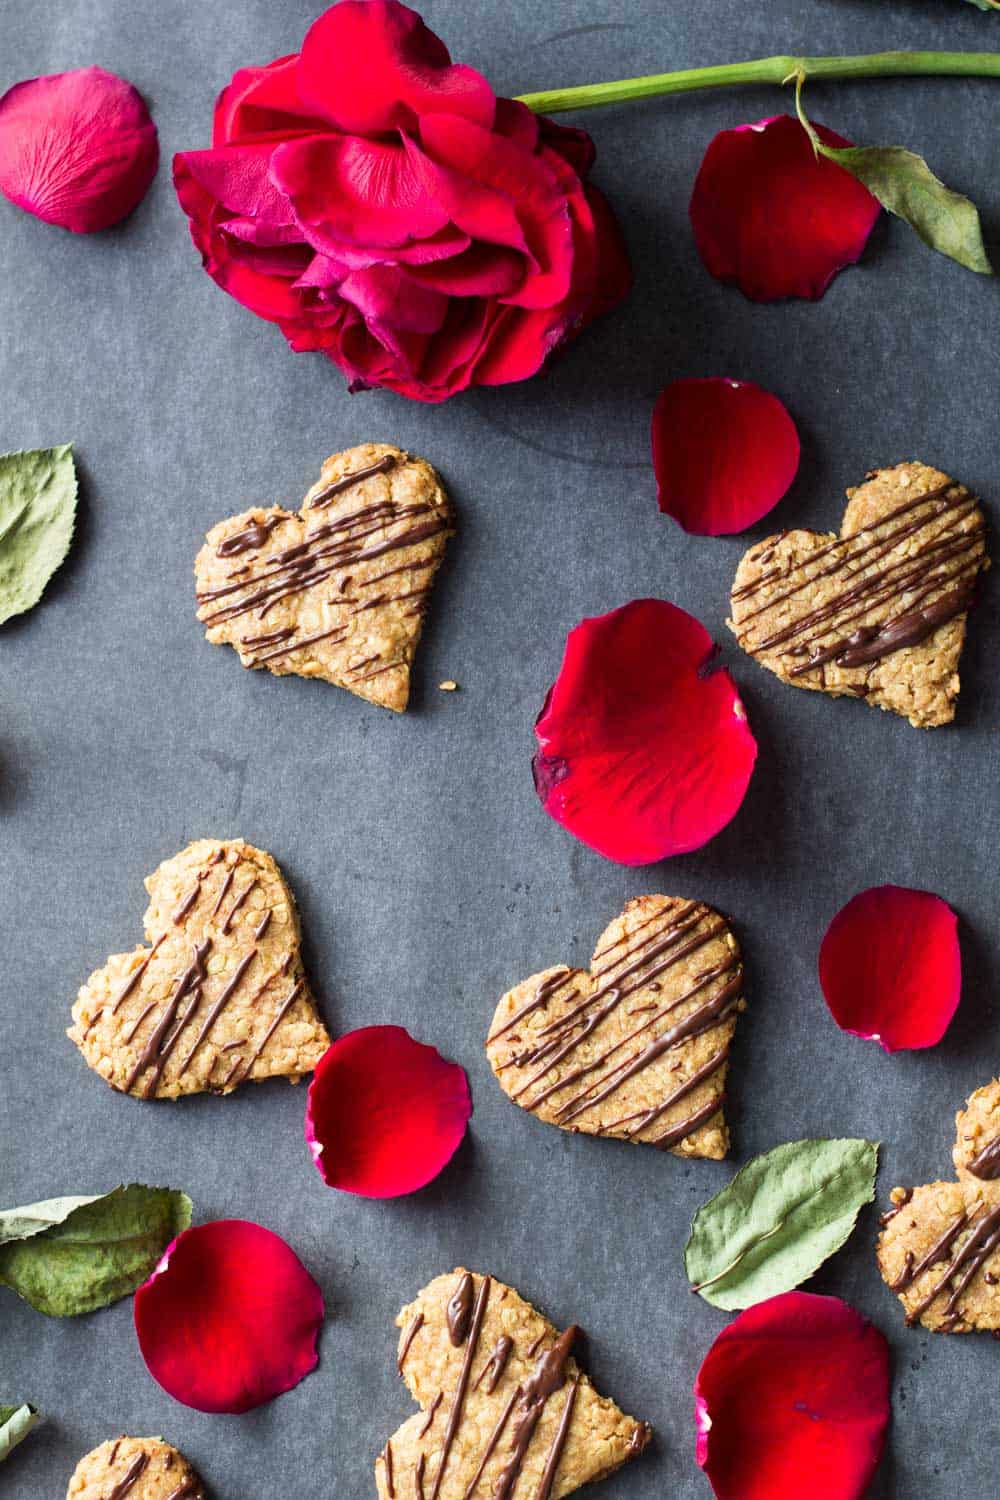 Have a beautiful & healthy Valentine's dessert/snack with these Healthy Spelt Oat Cookies! Show your better half some true love by caring for their health!